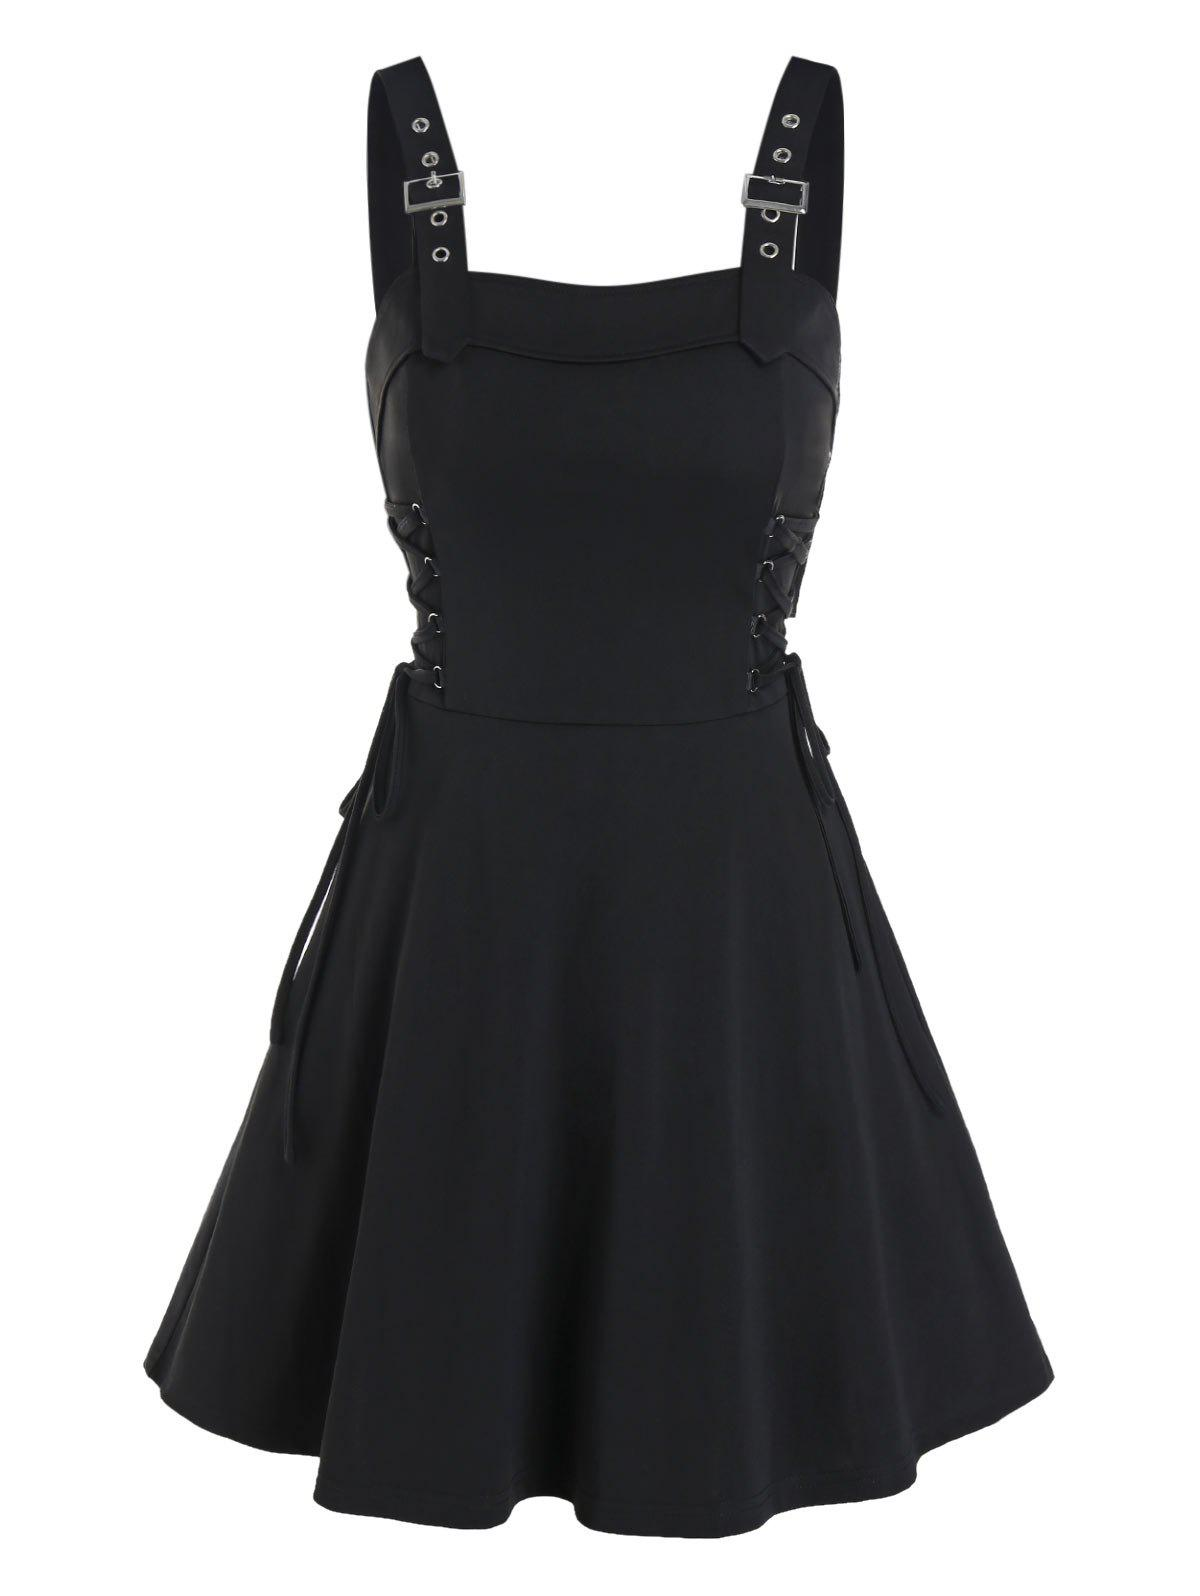 Sleeveless Buckle Strap Lace-up Gothic Dress - BLACK XL